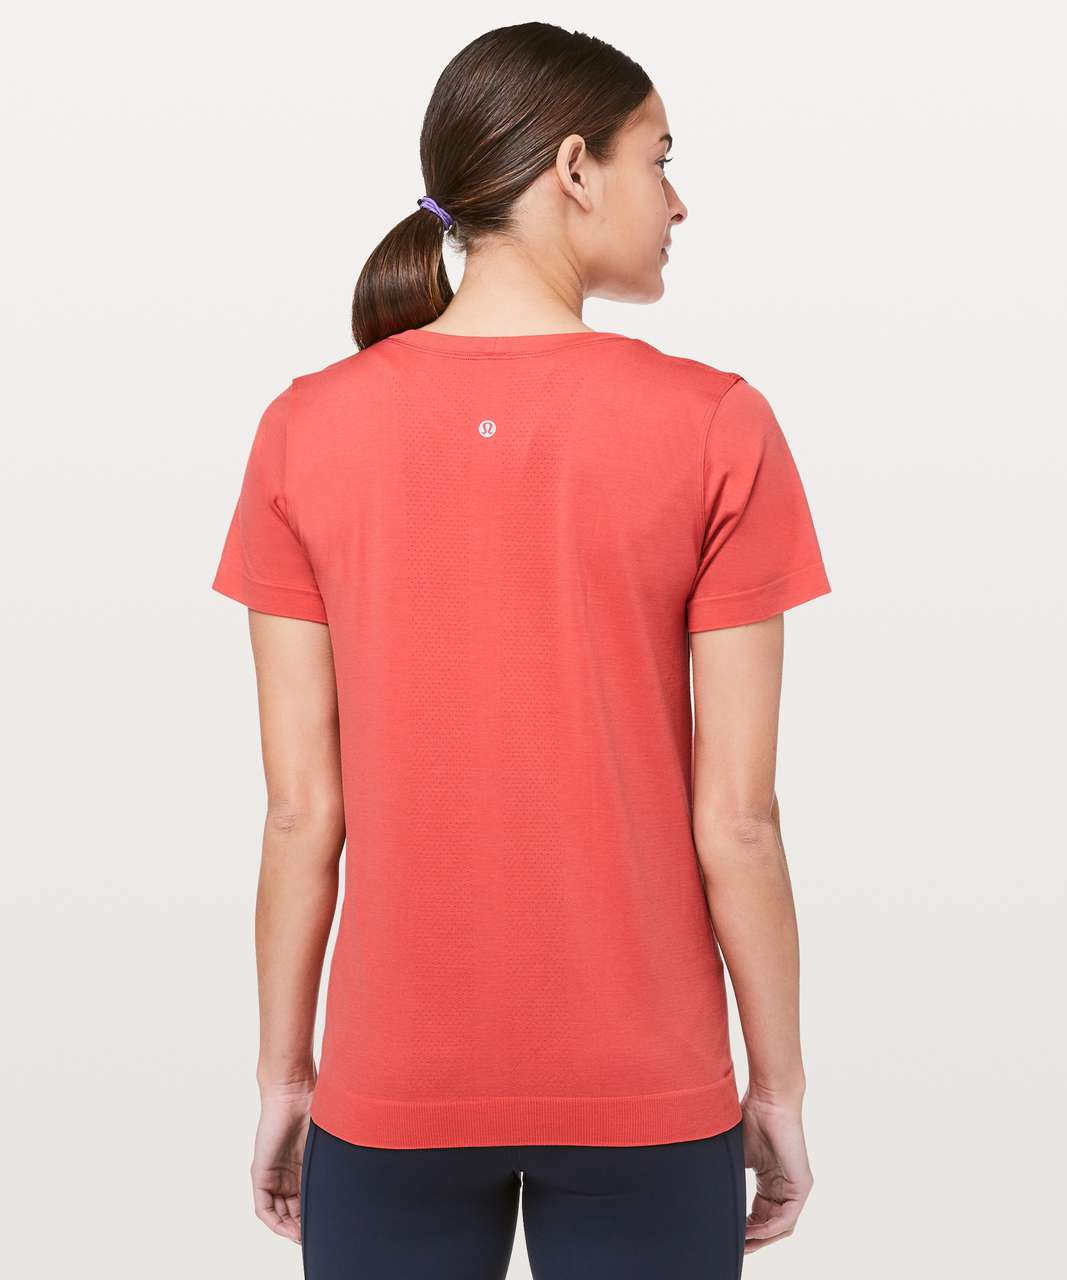 Lululemon Swiftly Tech Short Sleeve (Breeze) *Relaxed Fit - Poppy Coral / Poppy Coral